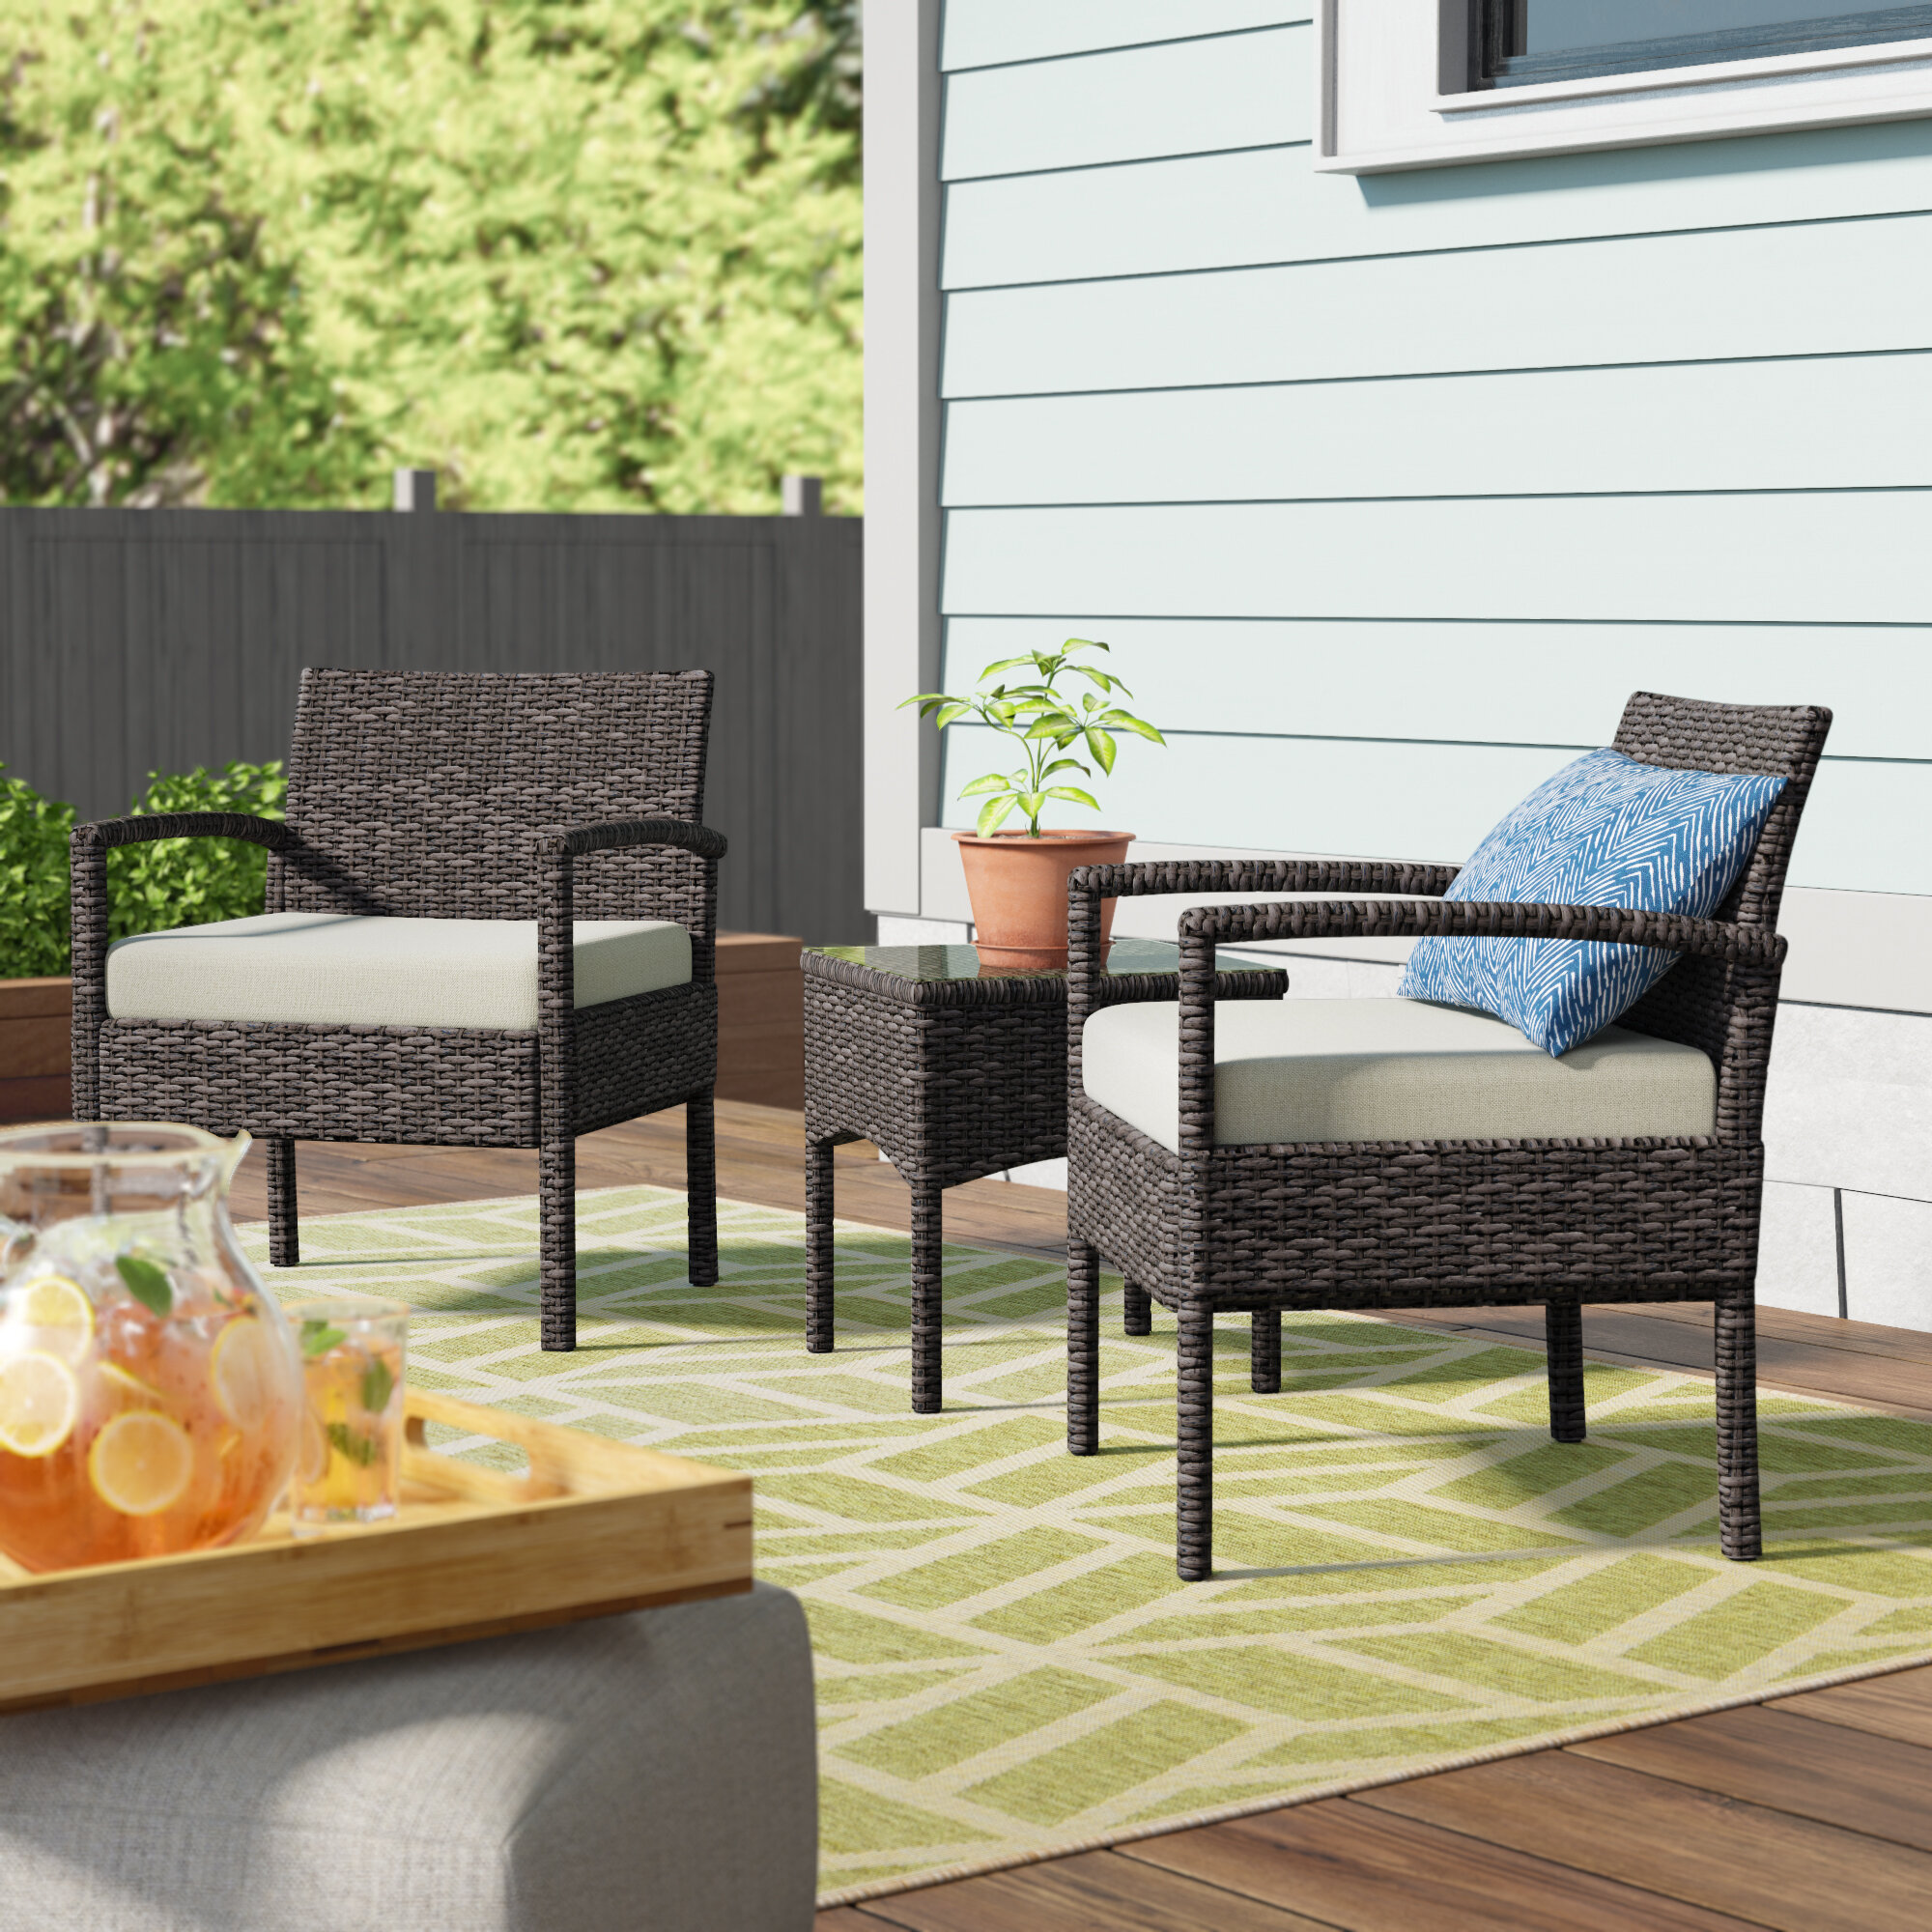 Incredible Patio Furniture Sales Clearances Wayfair Download Free Architecture Designs Sospemadebymaigaardcom